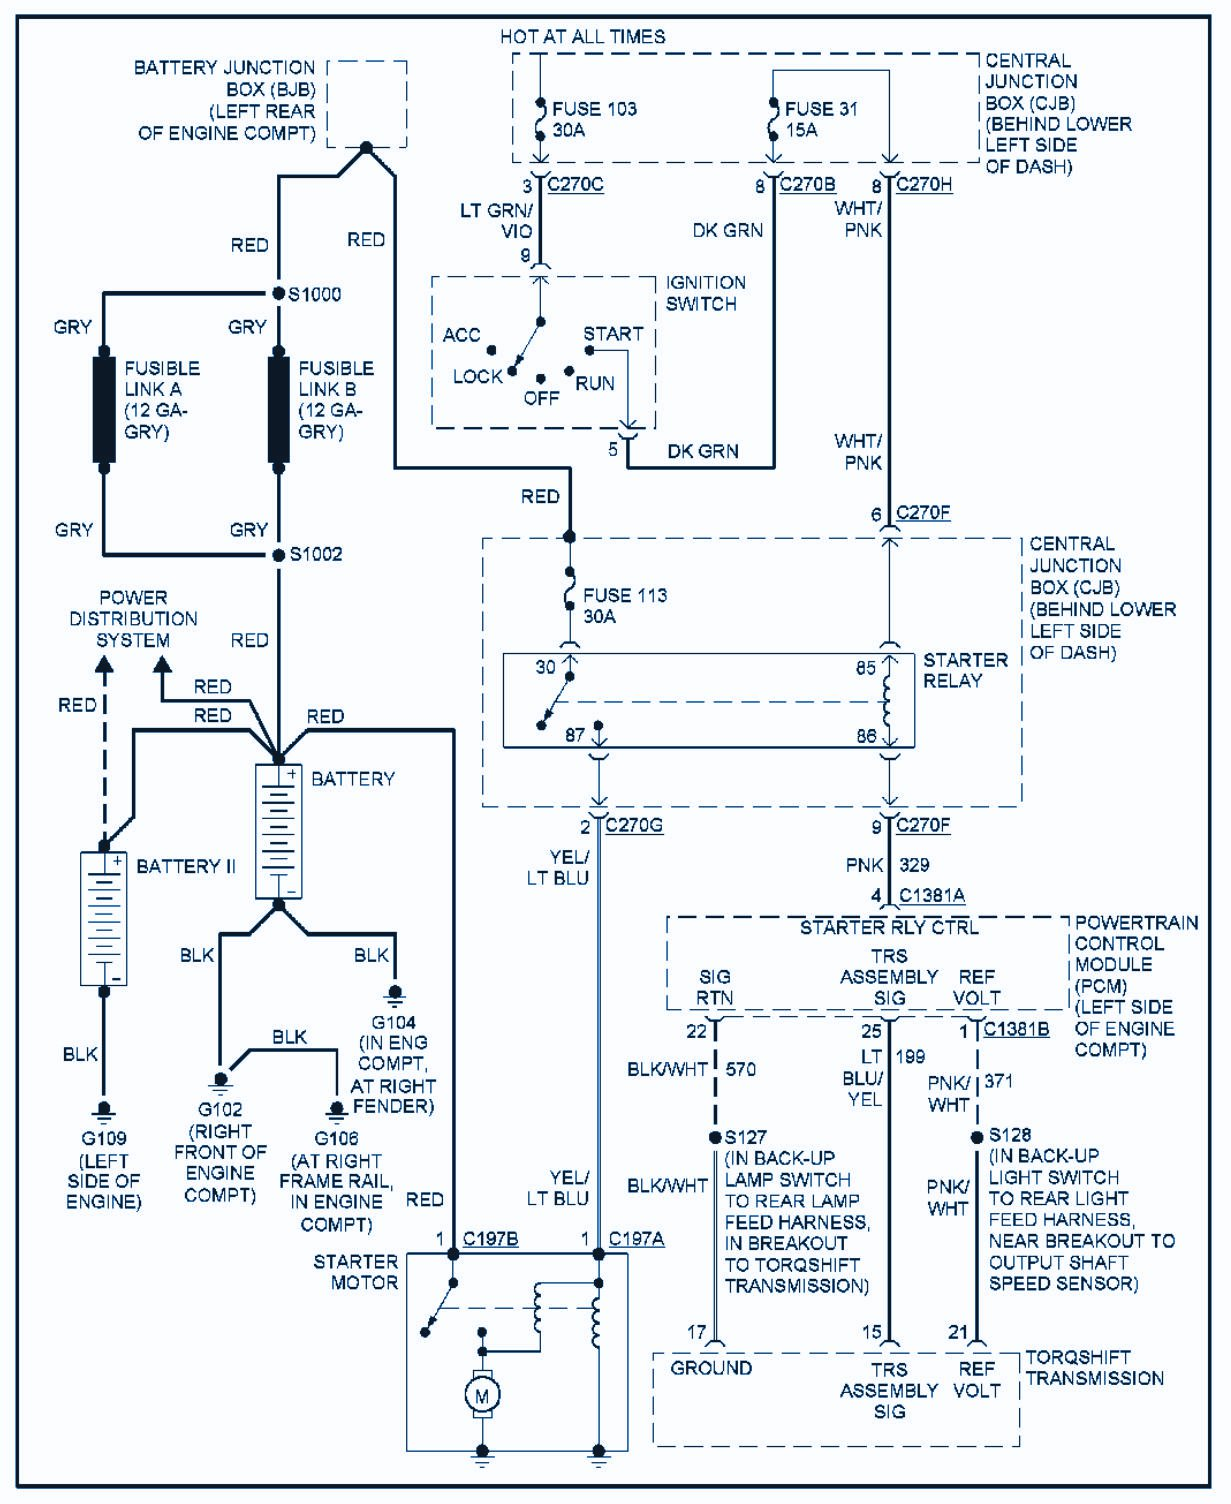 diagram] 1996 ford f 250 headlight wiring diagram full version hd quality wiring  diagram - wolfewiring.coiffure-a-domicile-67.fr  wolfewiring.coiffure-a-domicile-67.fr